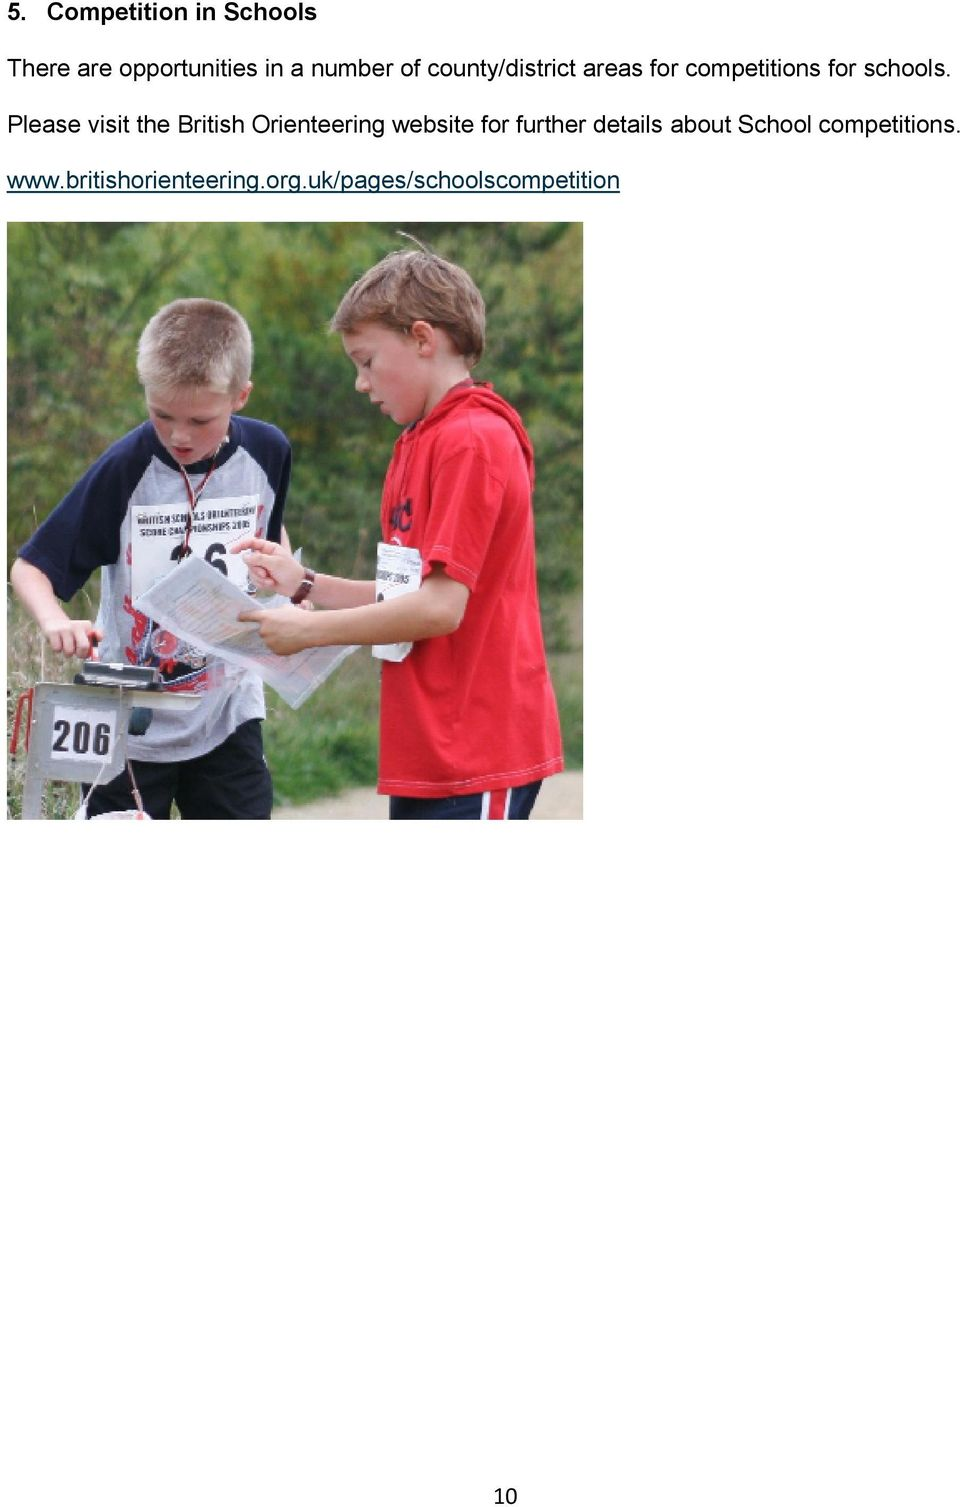 Please visit the British Orienteering website for further details